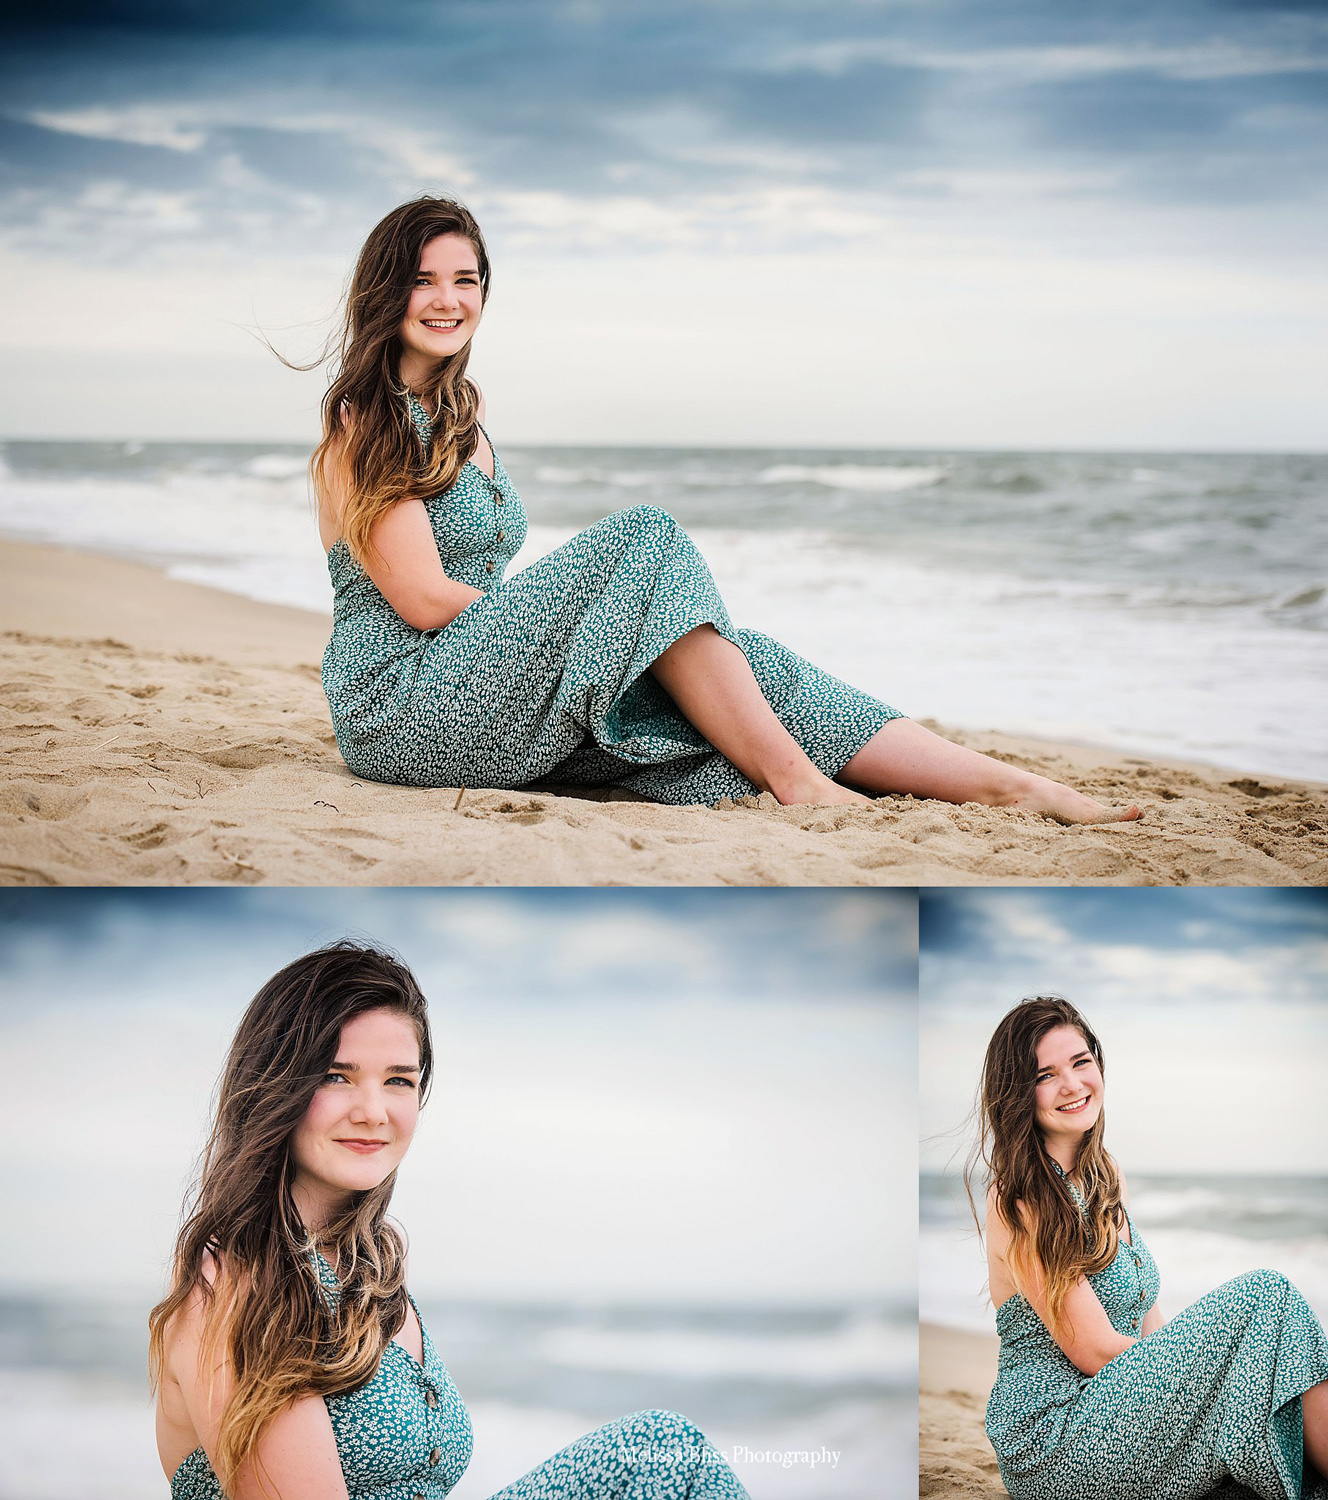 portraits-on-sandbridge-beach-melissa-bliss-photography.jpg